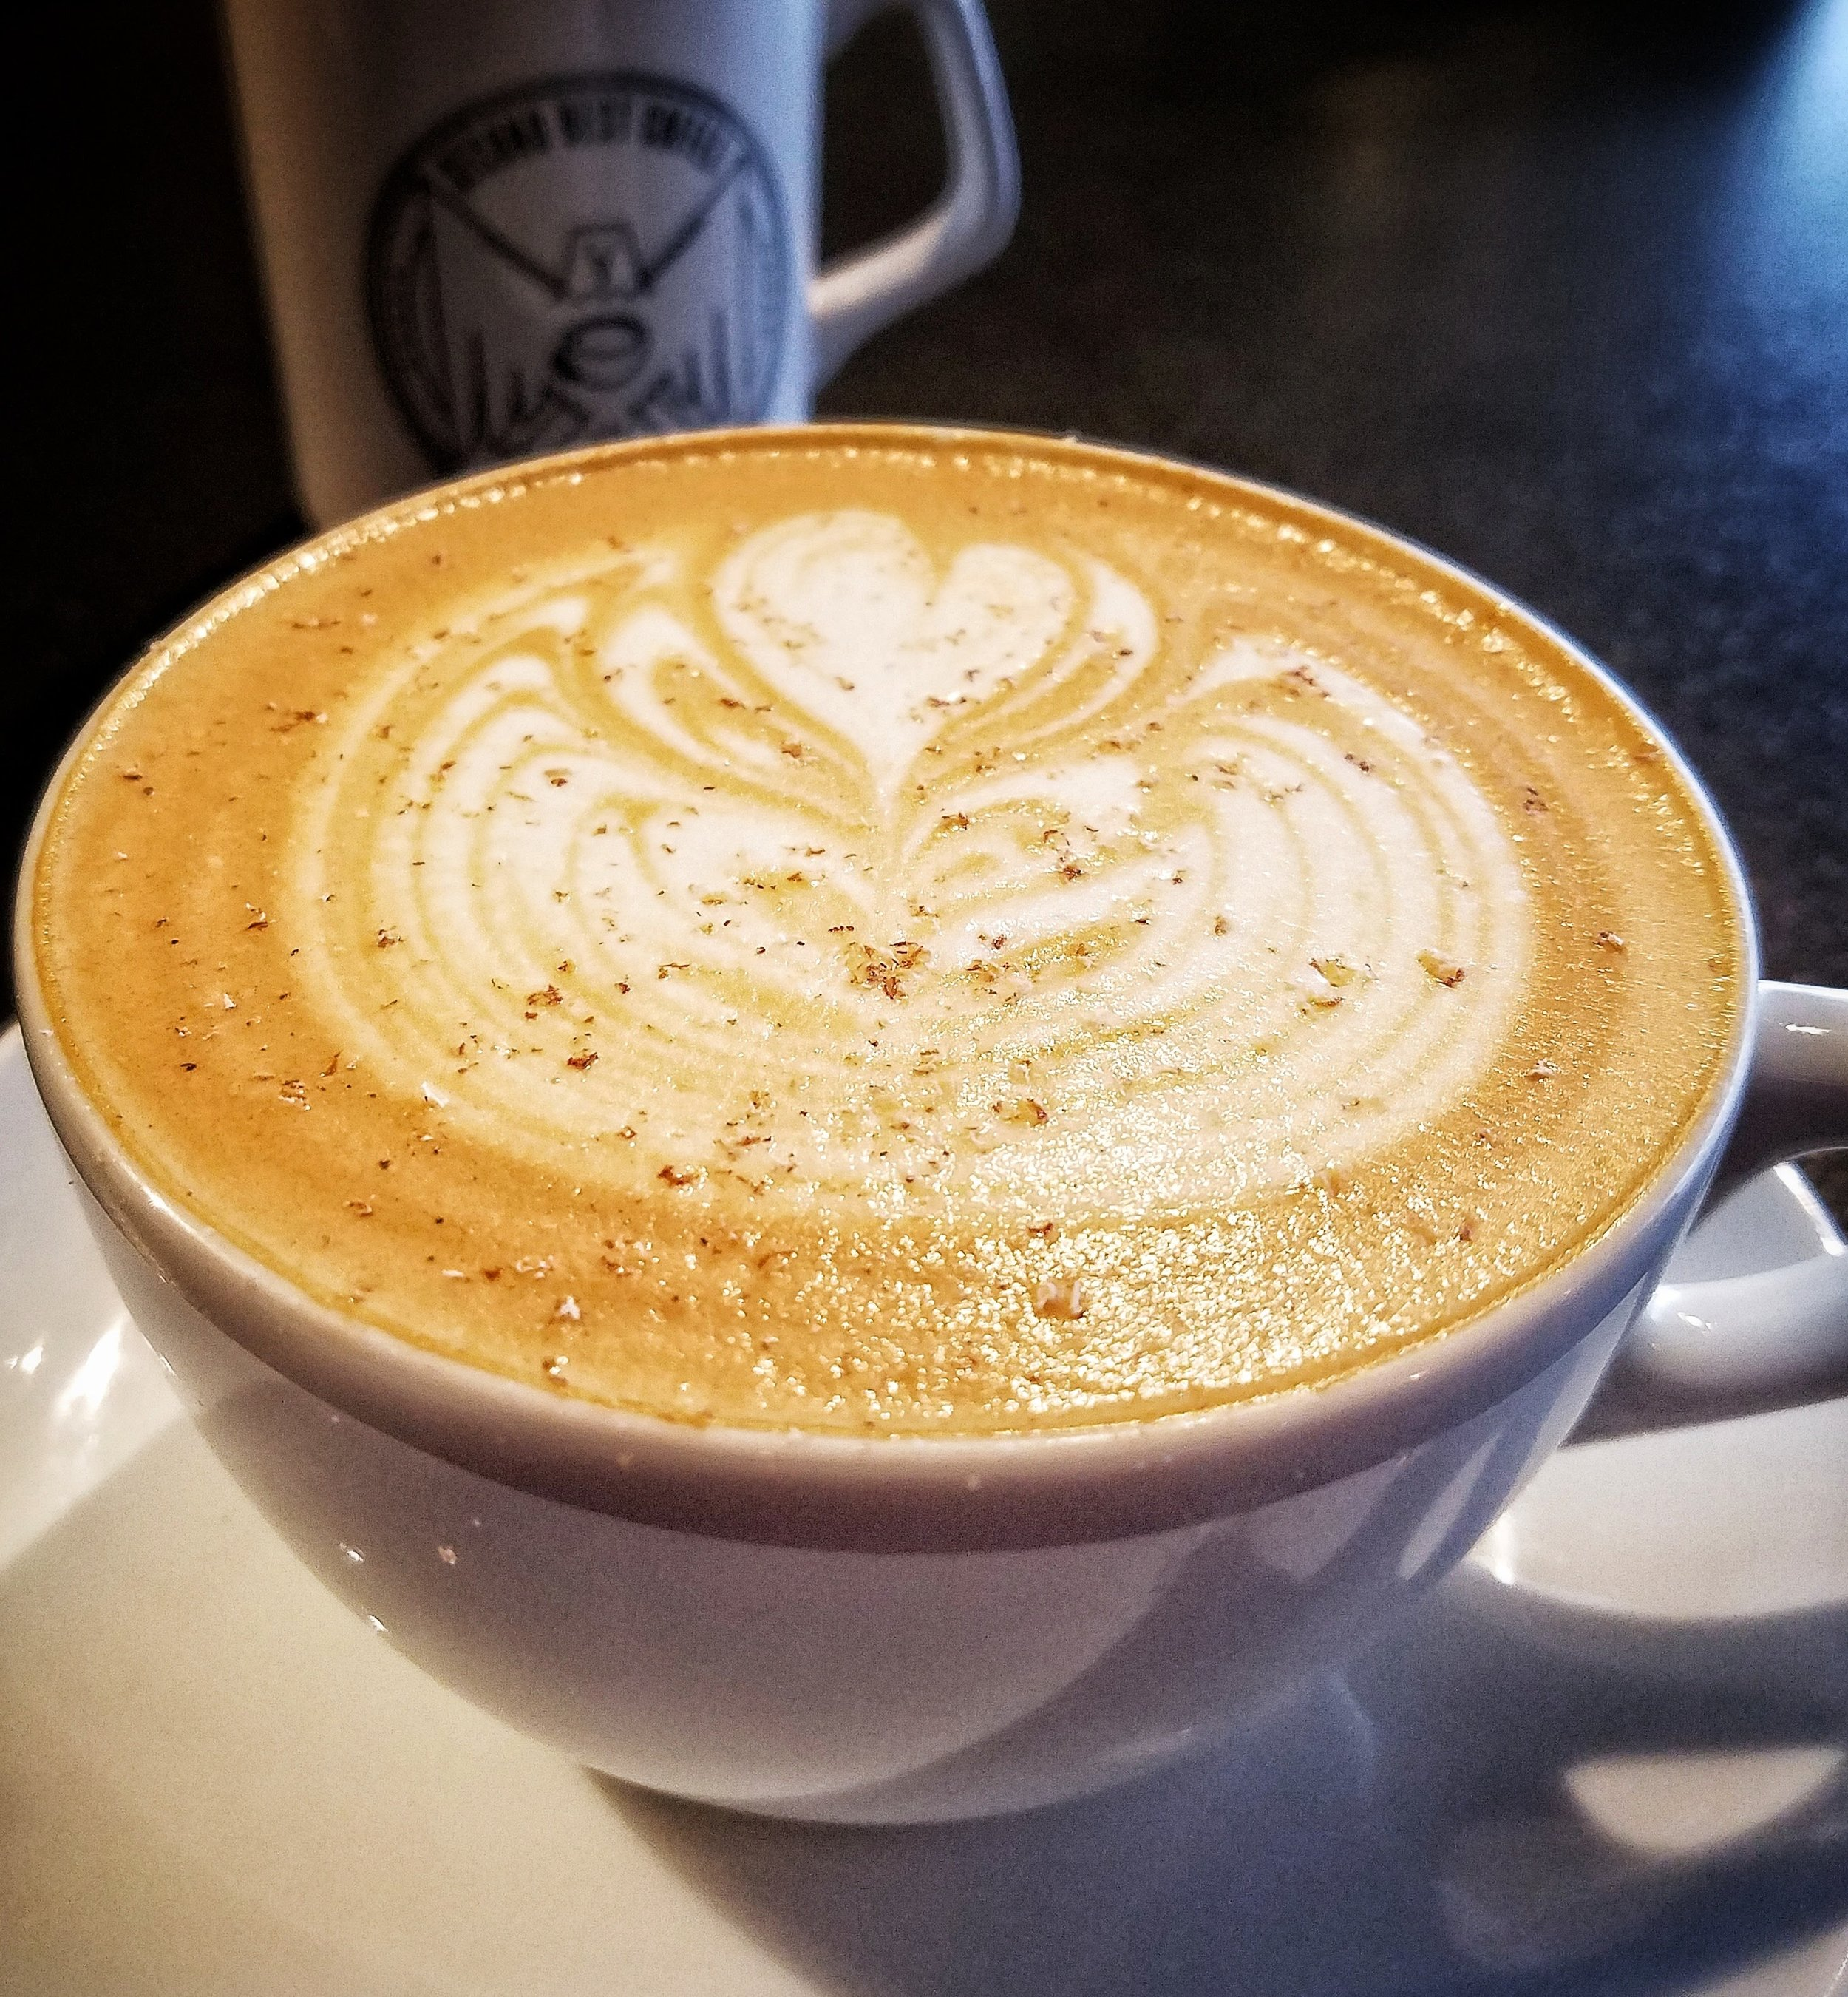 Second Best Coffee. All photos courtesy of KC Local Eats.